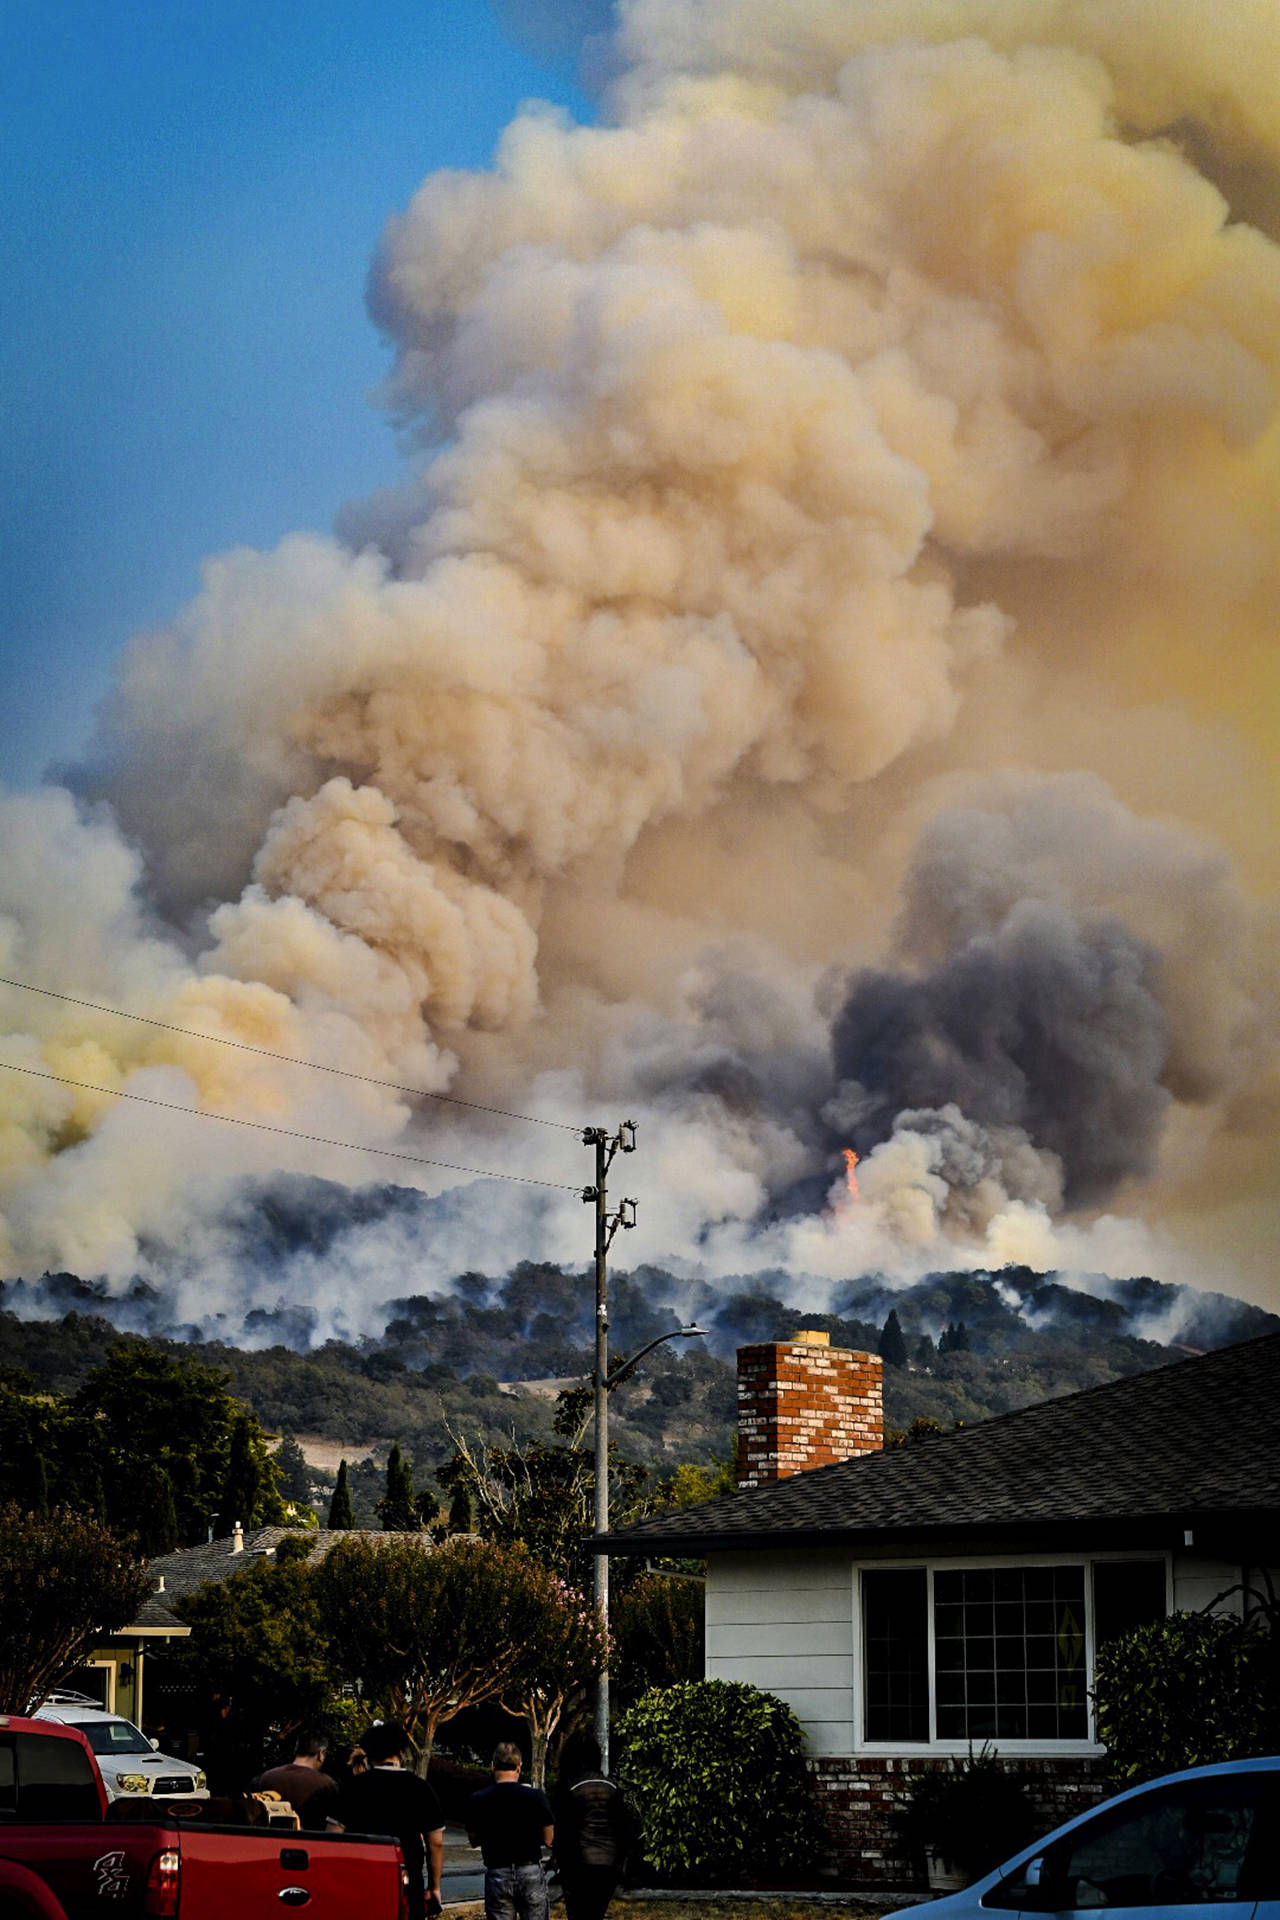 In this Oct. 11 photo, smoke rises from fires in Santa Rosa, California. (Derek Anderson via AP)